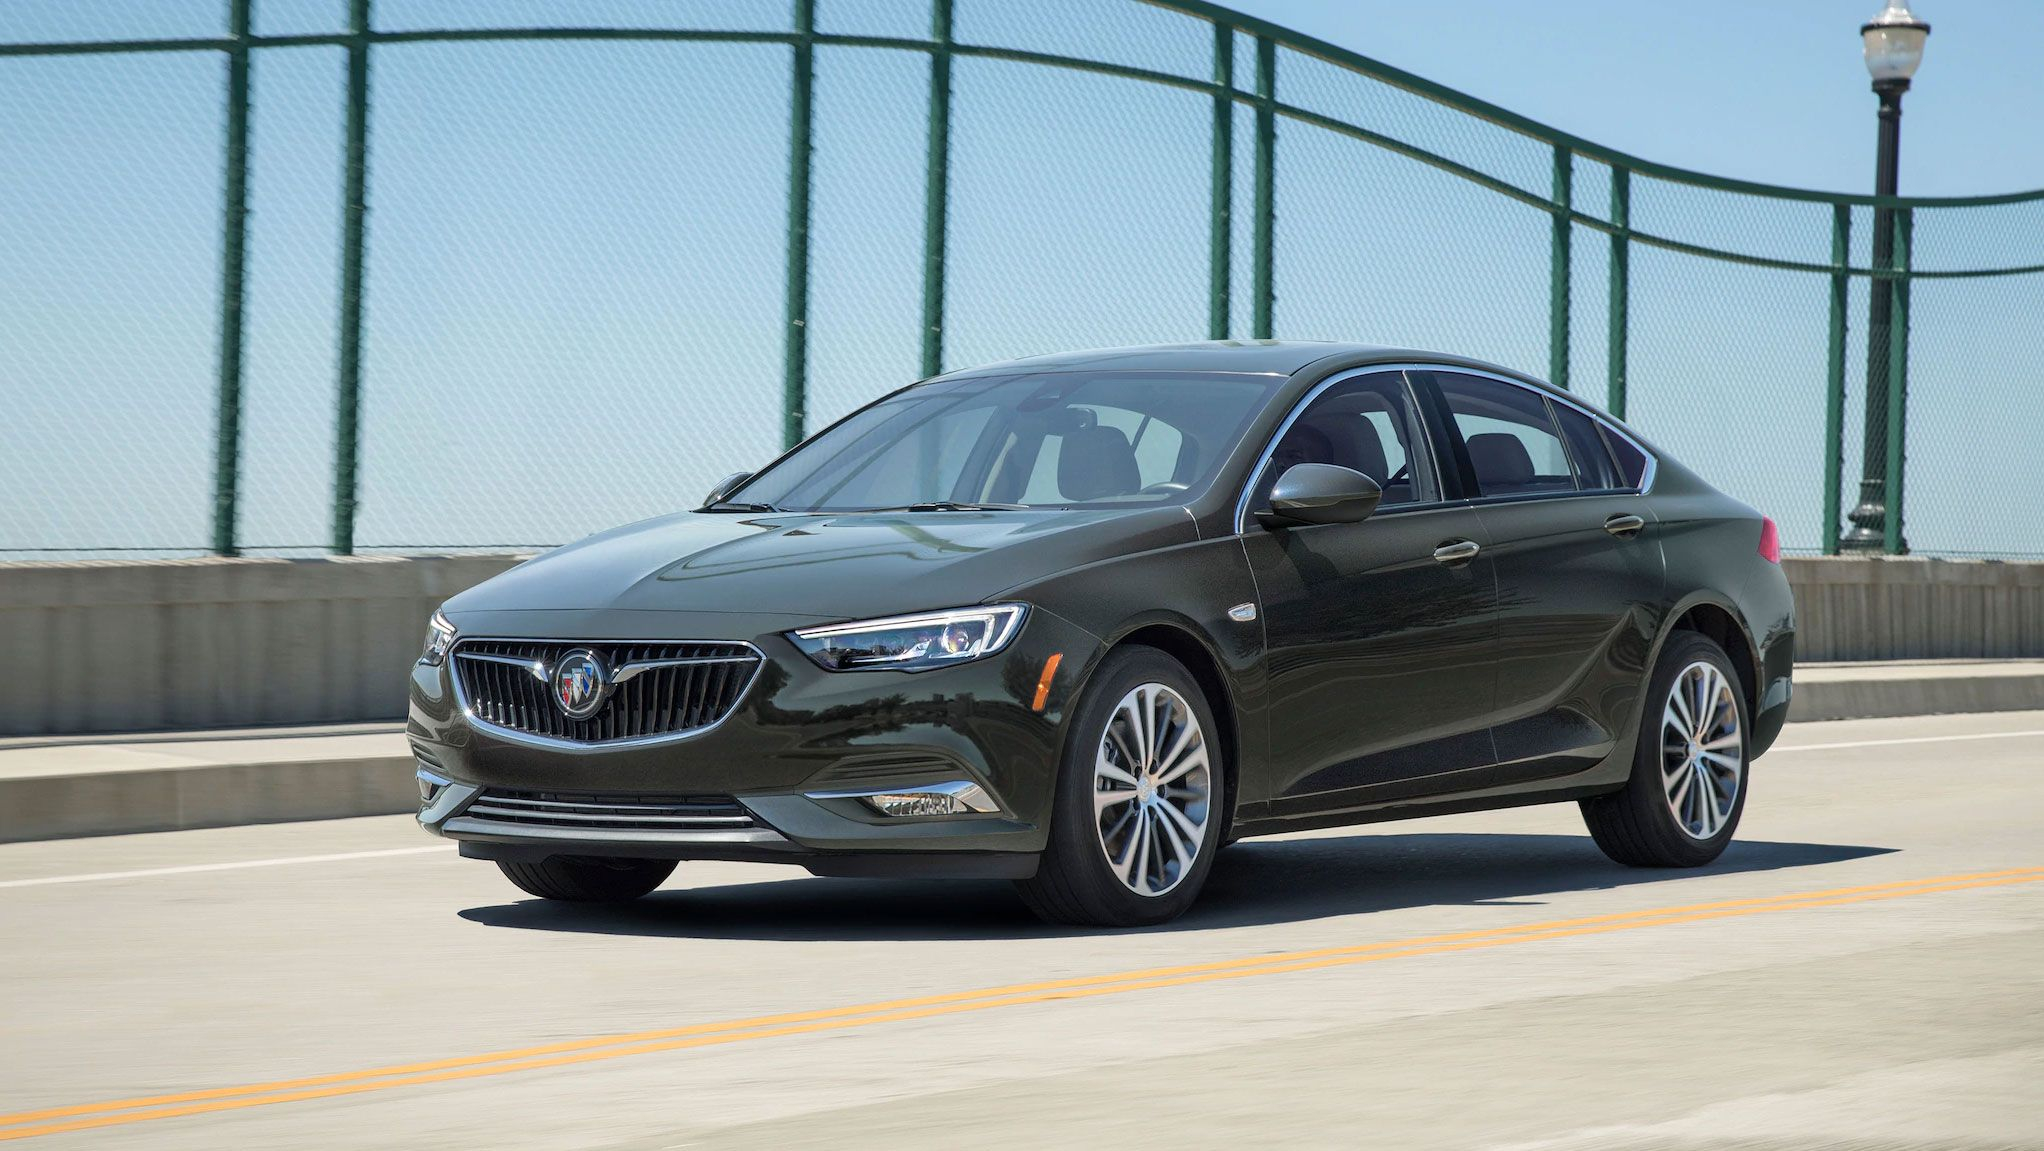 2020 Buick Regal Sportback Review, Pricing, And Specs New 2021 Buick Regal Sportback Review, Price, 0-60